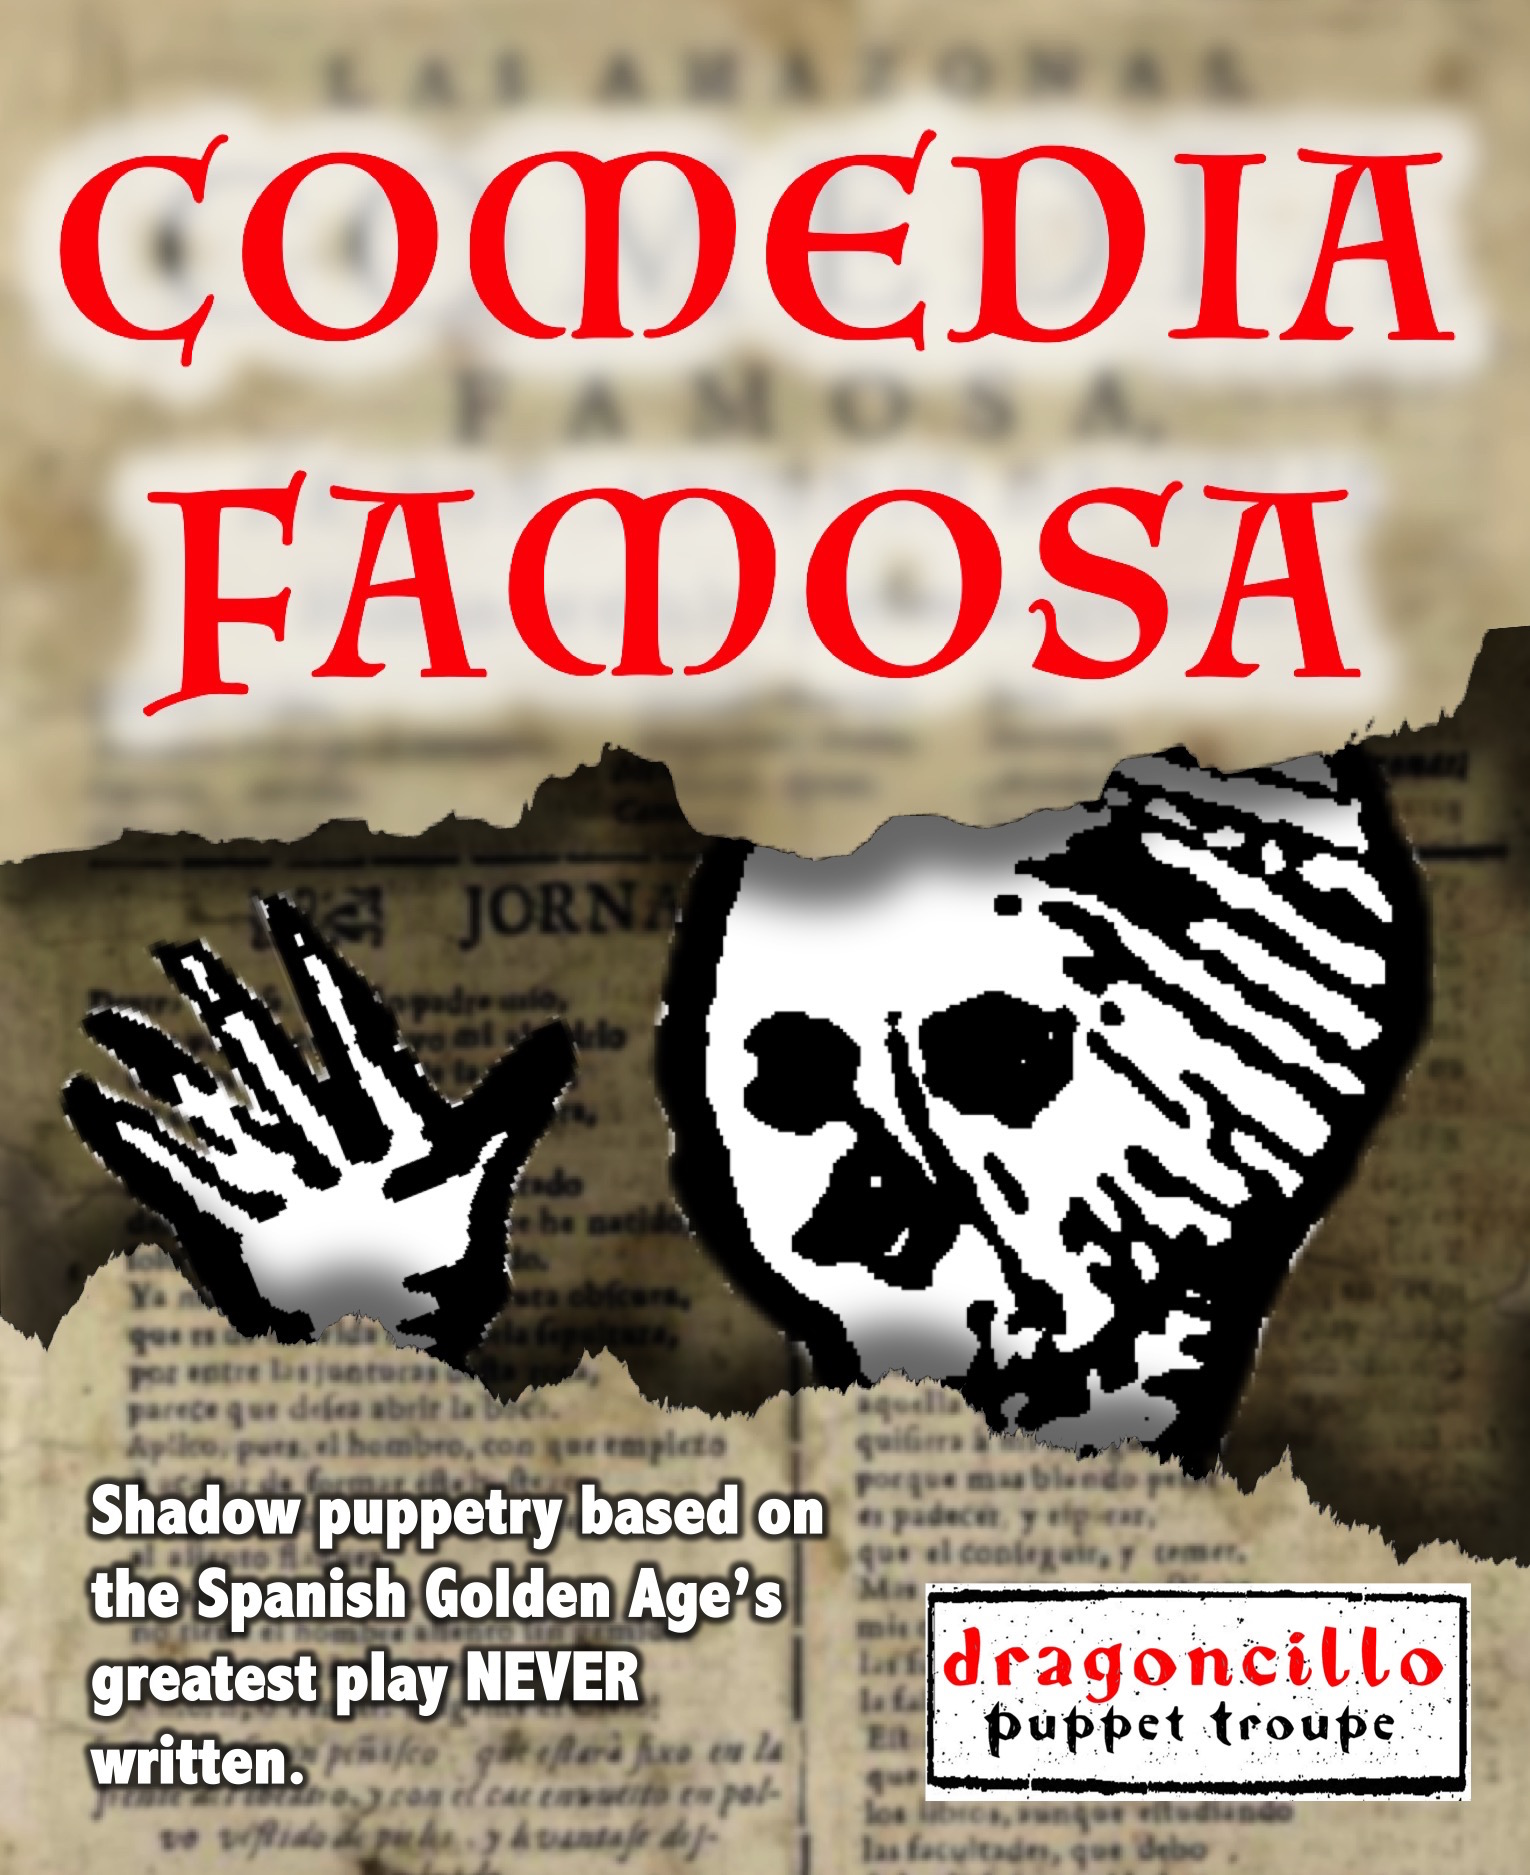 Comedia famosa (2020) - Coming soon, a shadow puppet adaptation of the play seventeenth-century Spain's greatest playwrights—Lope de Vega, Tirso de Molina, Sor Juana Inés de la Cruz, Pedro Calderón de la Barca, Augustín Moreto, Juan Ruíz de Alarcón— never intended to write.Stay tuned for updates!